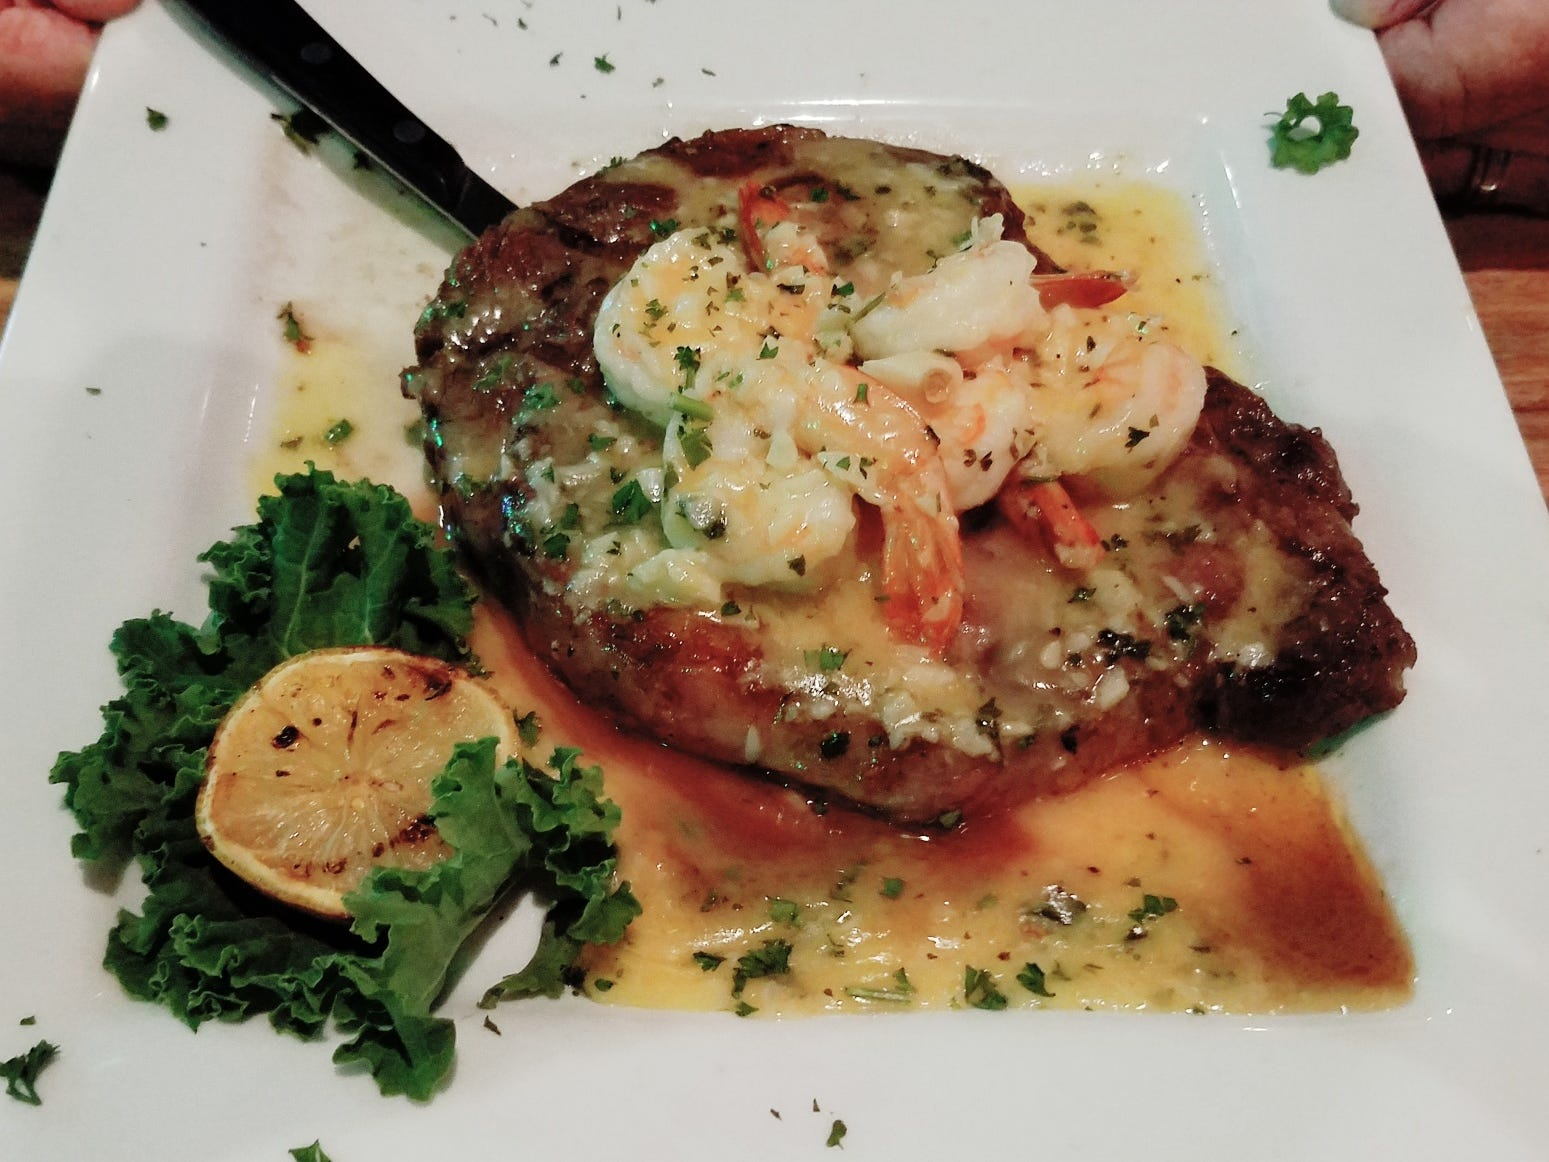 Twisted Tuna's Angus rib-eye steak  topped with shrimp scampi in a rich garlic, butter and wine sauce.